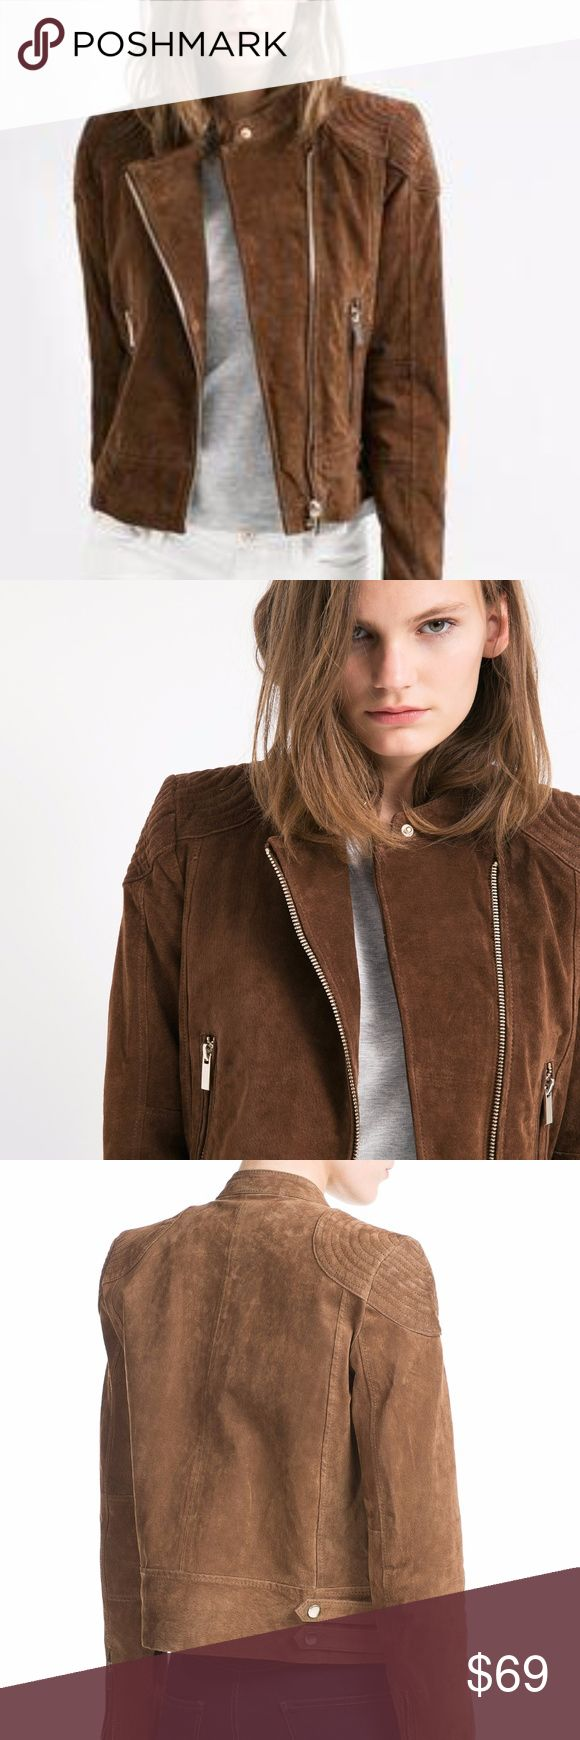 Mango Women's Brown Peccary Biker Jacket Beautiful Peccary leather biker jacket with stitched padded shoulders. Snap button fastening collar, asymmetric zip through front and twin side pockets. Belted waist and zipped cuffs. Mango Jackets & Coats